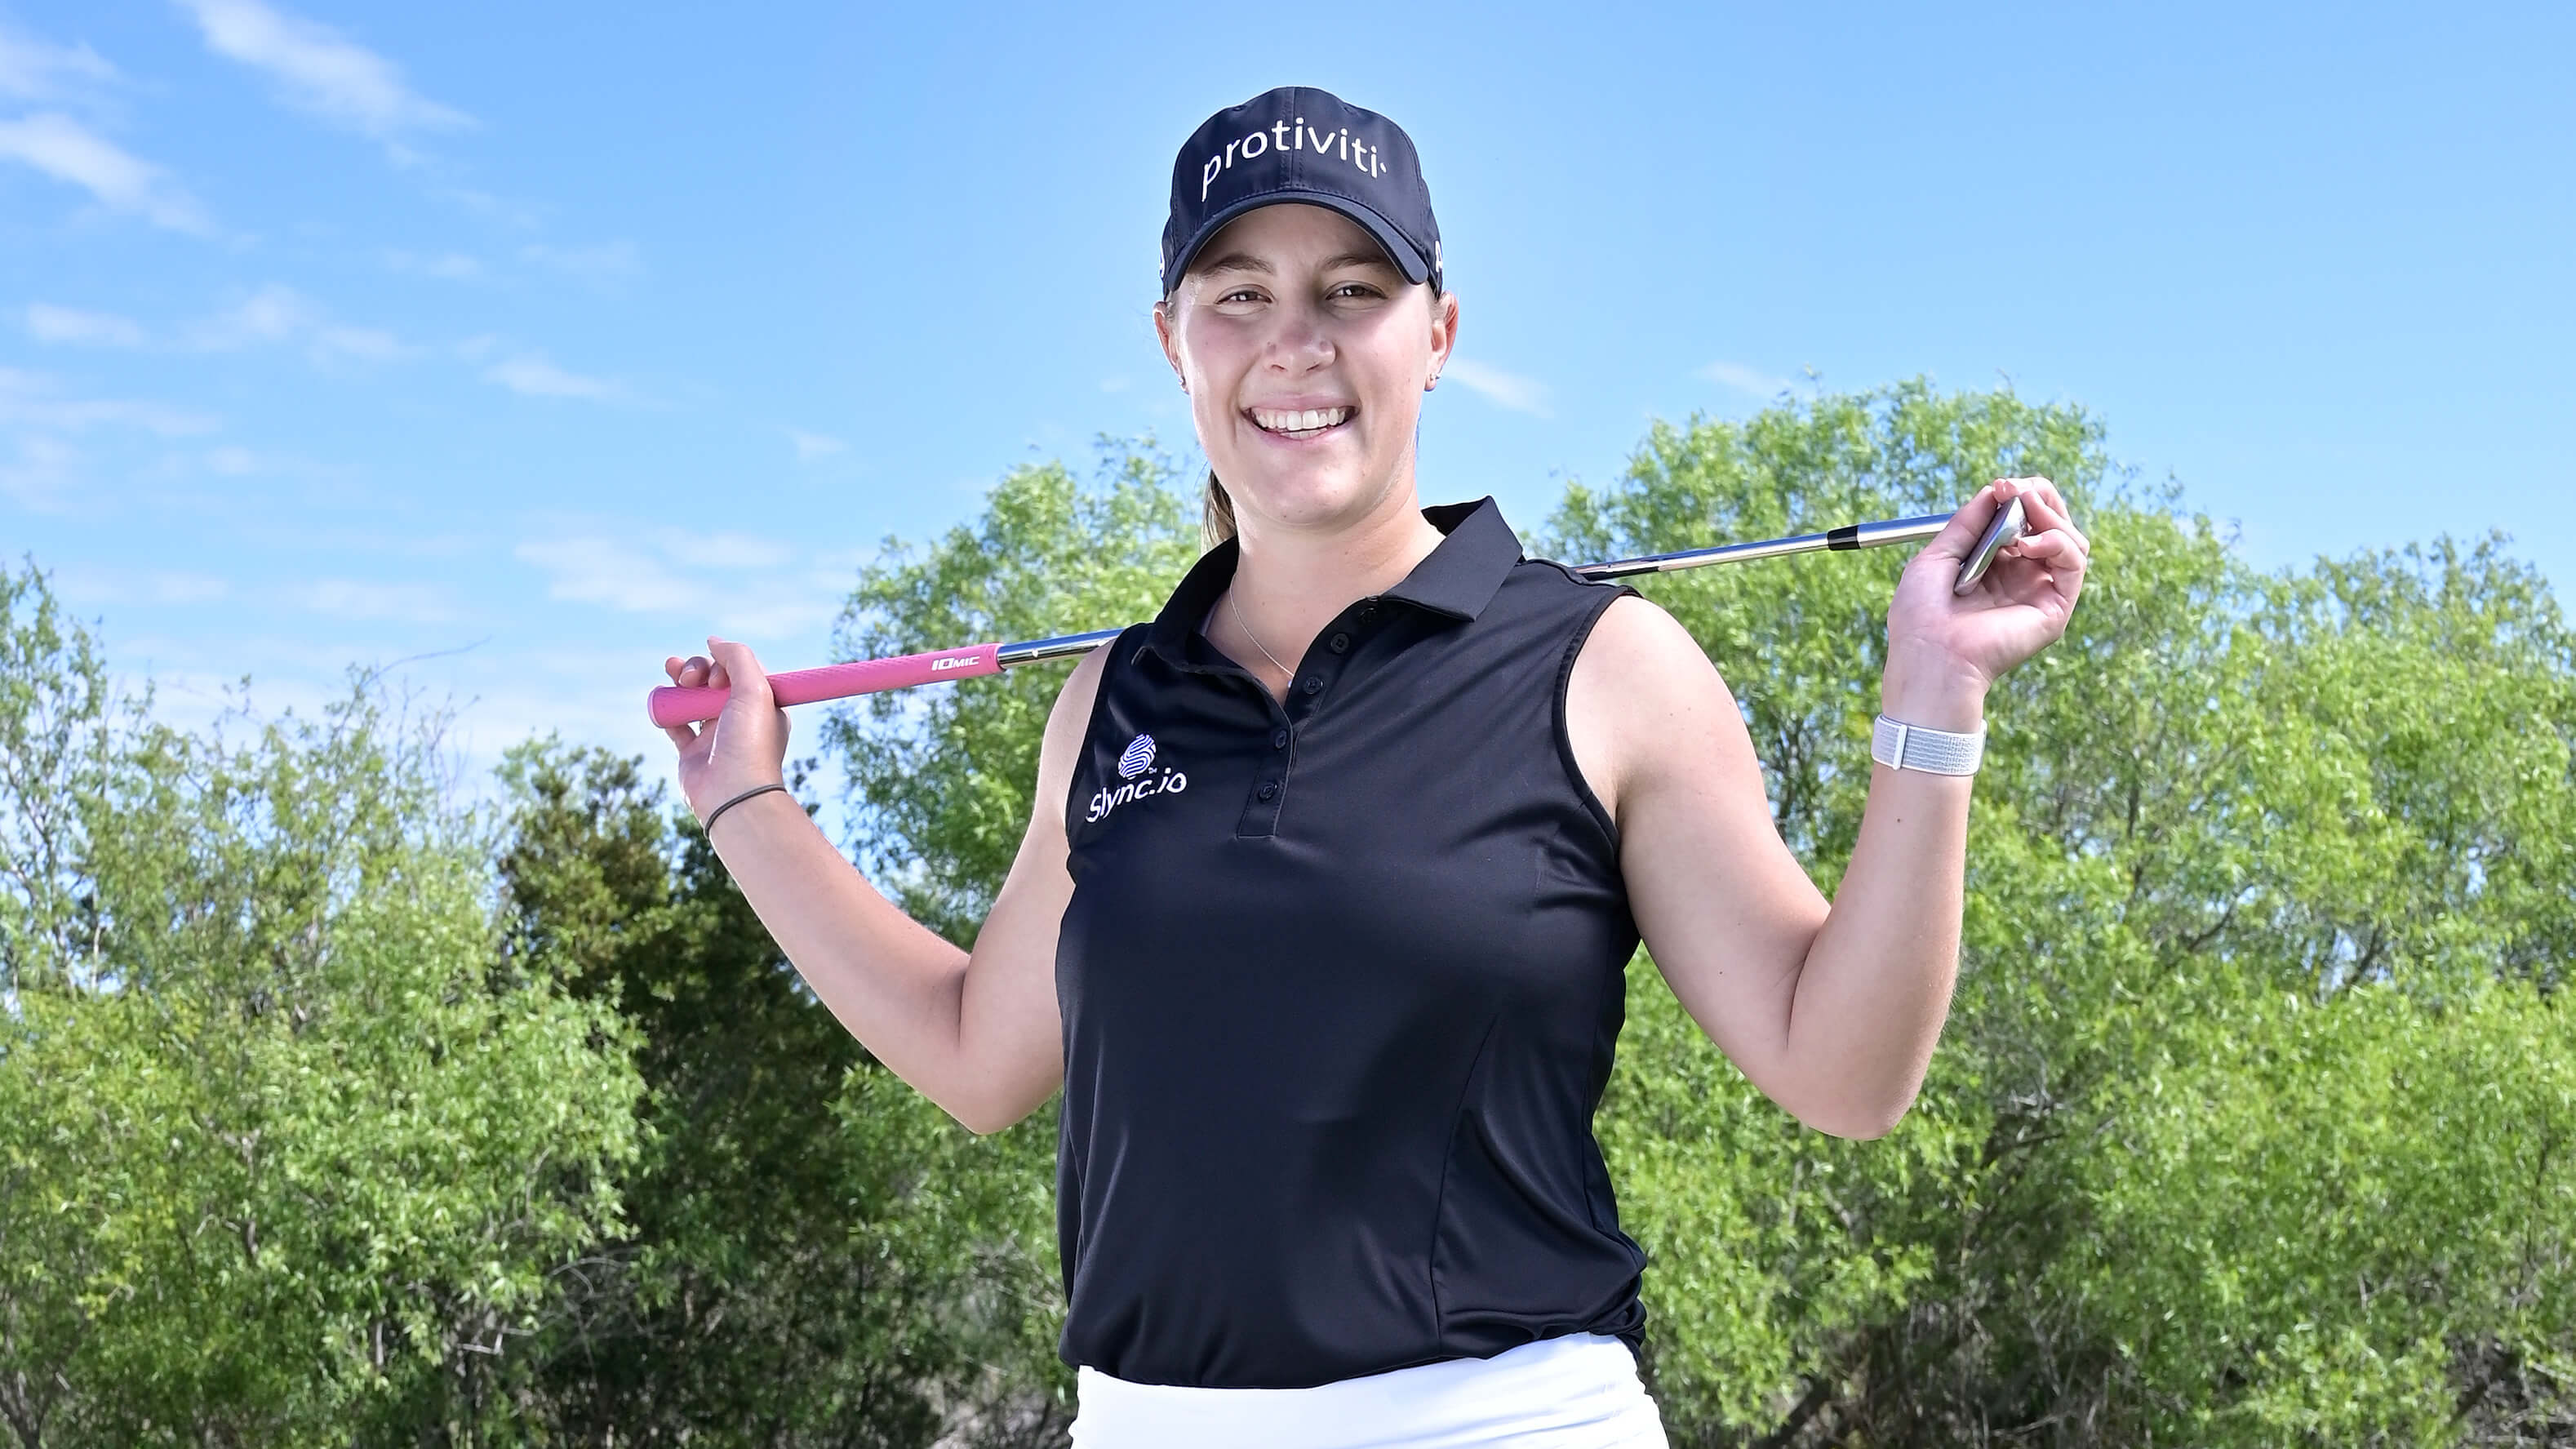 Jennifer Kupcho debuted on the LPGA TOUR in 2019 after a storied amateur career. In the first-ever women's amateur event at Augusta National, Kupcho shot a final round of 5-under to outlast the field. She also holds multiple collegiate titles including 2018 NCAA Player of the Year. Since joining the LPGA TOUR, she's earned nine Top 10 finishes including three runner-up performances at the 2021 LPGA Drive On Championship, 2020 ShopRite LPGA Classic, and 2019 Evian Championship.